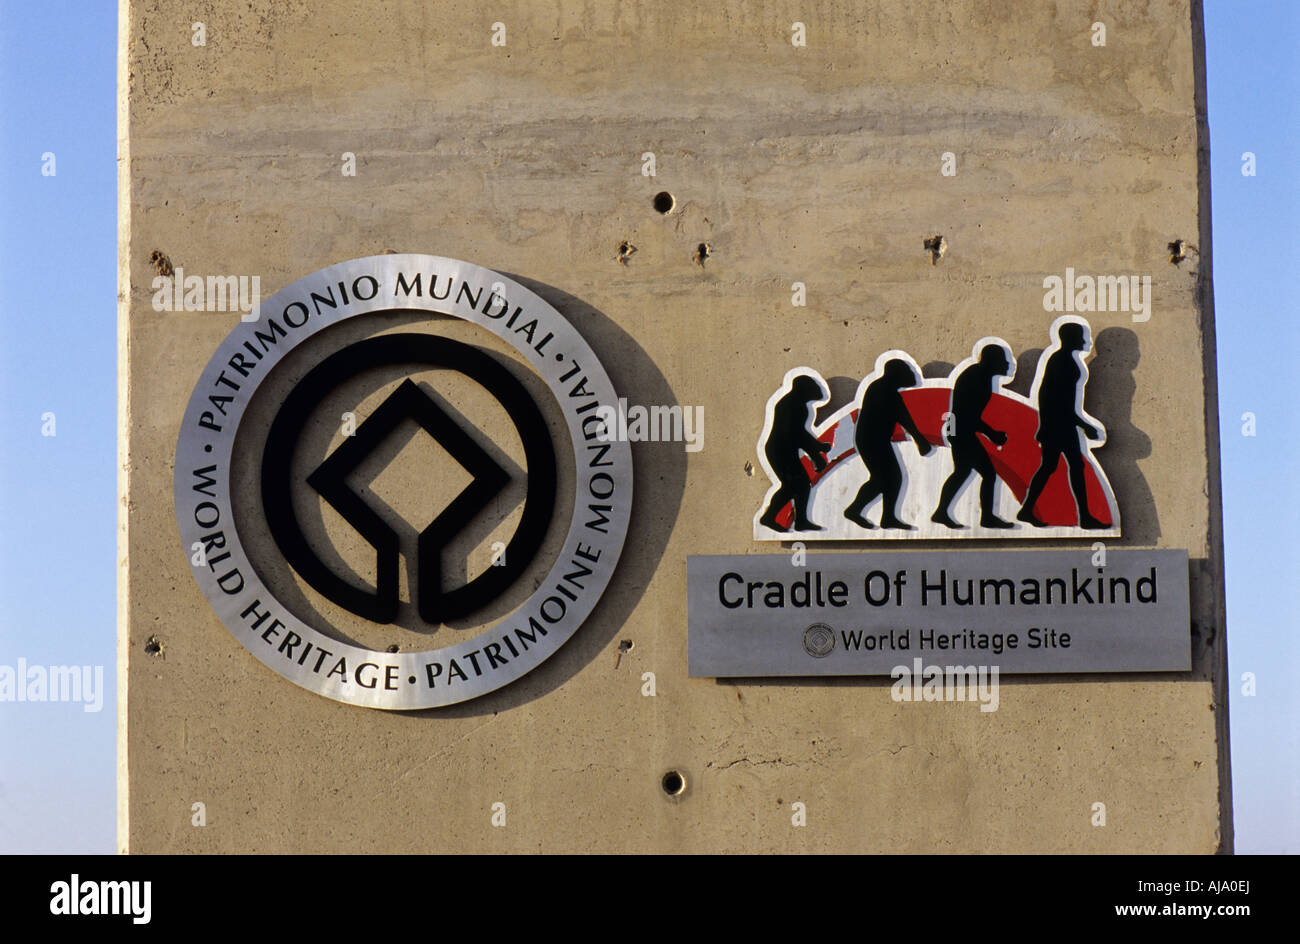 Signs on concrete pillar Cradle of Humankind World Heritage site evolution ape to man Johannesburg South Africa - Stock Image